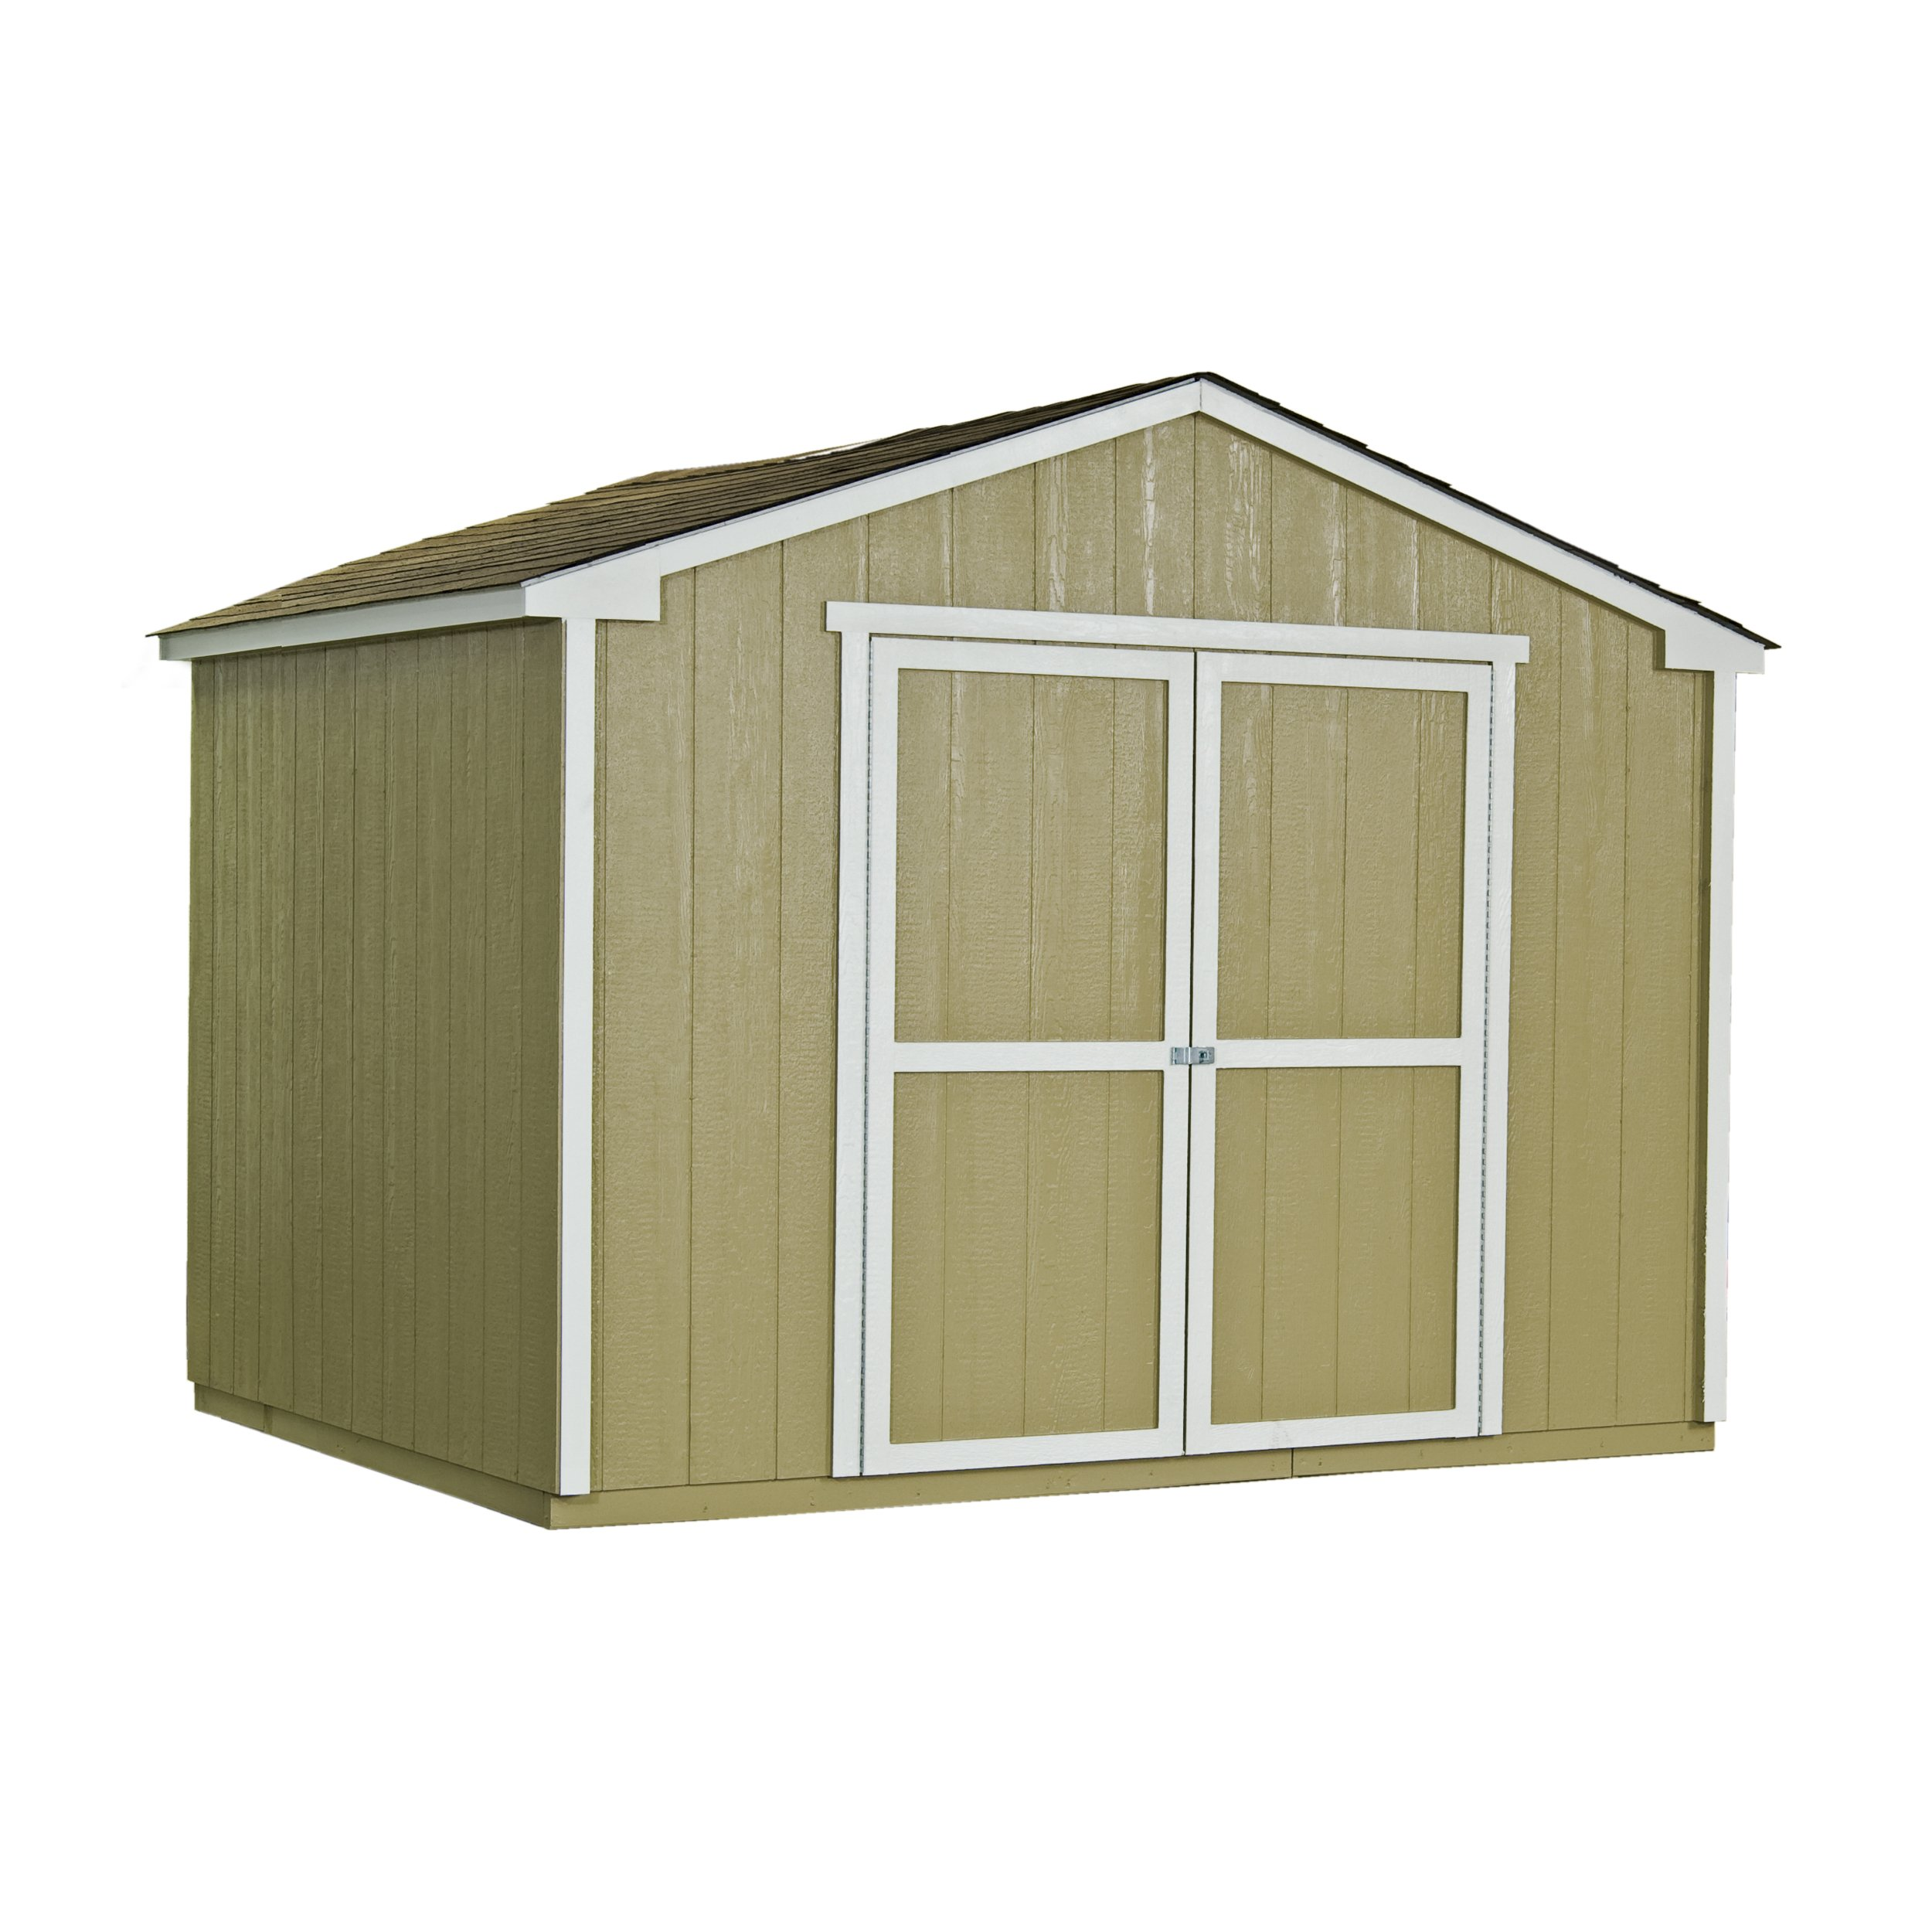 Handy Home Products Cumberland Wooden Storage Shed, 10 by 8-Feet by Handy Home Products